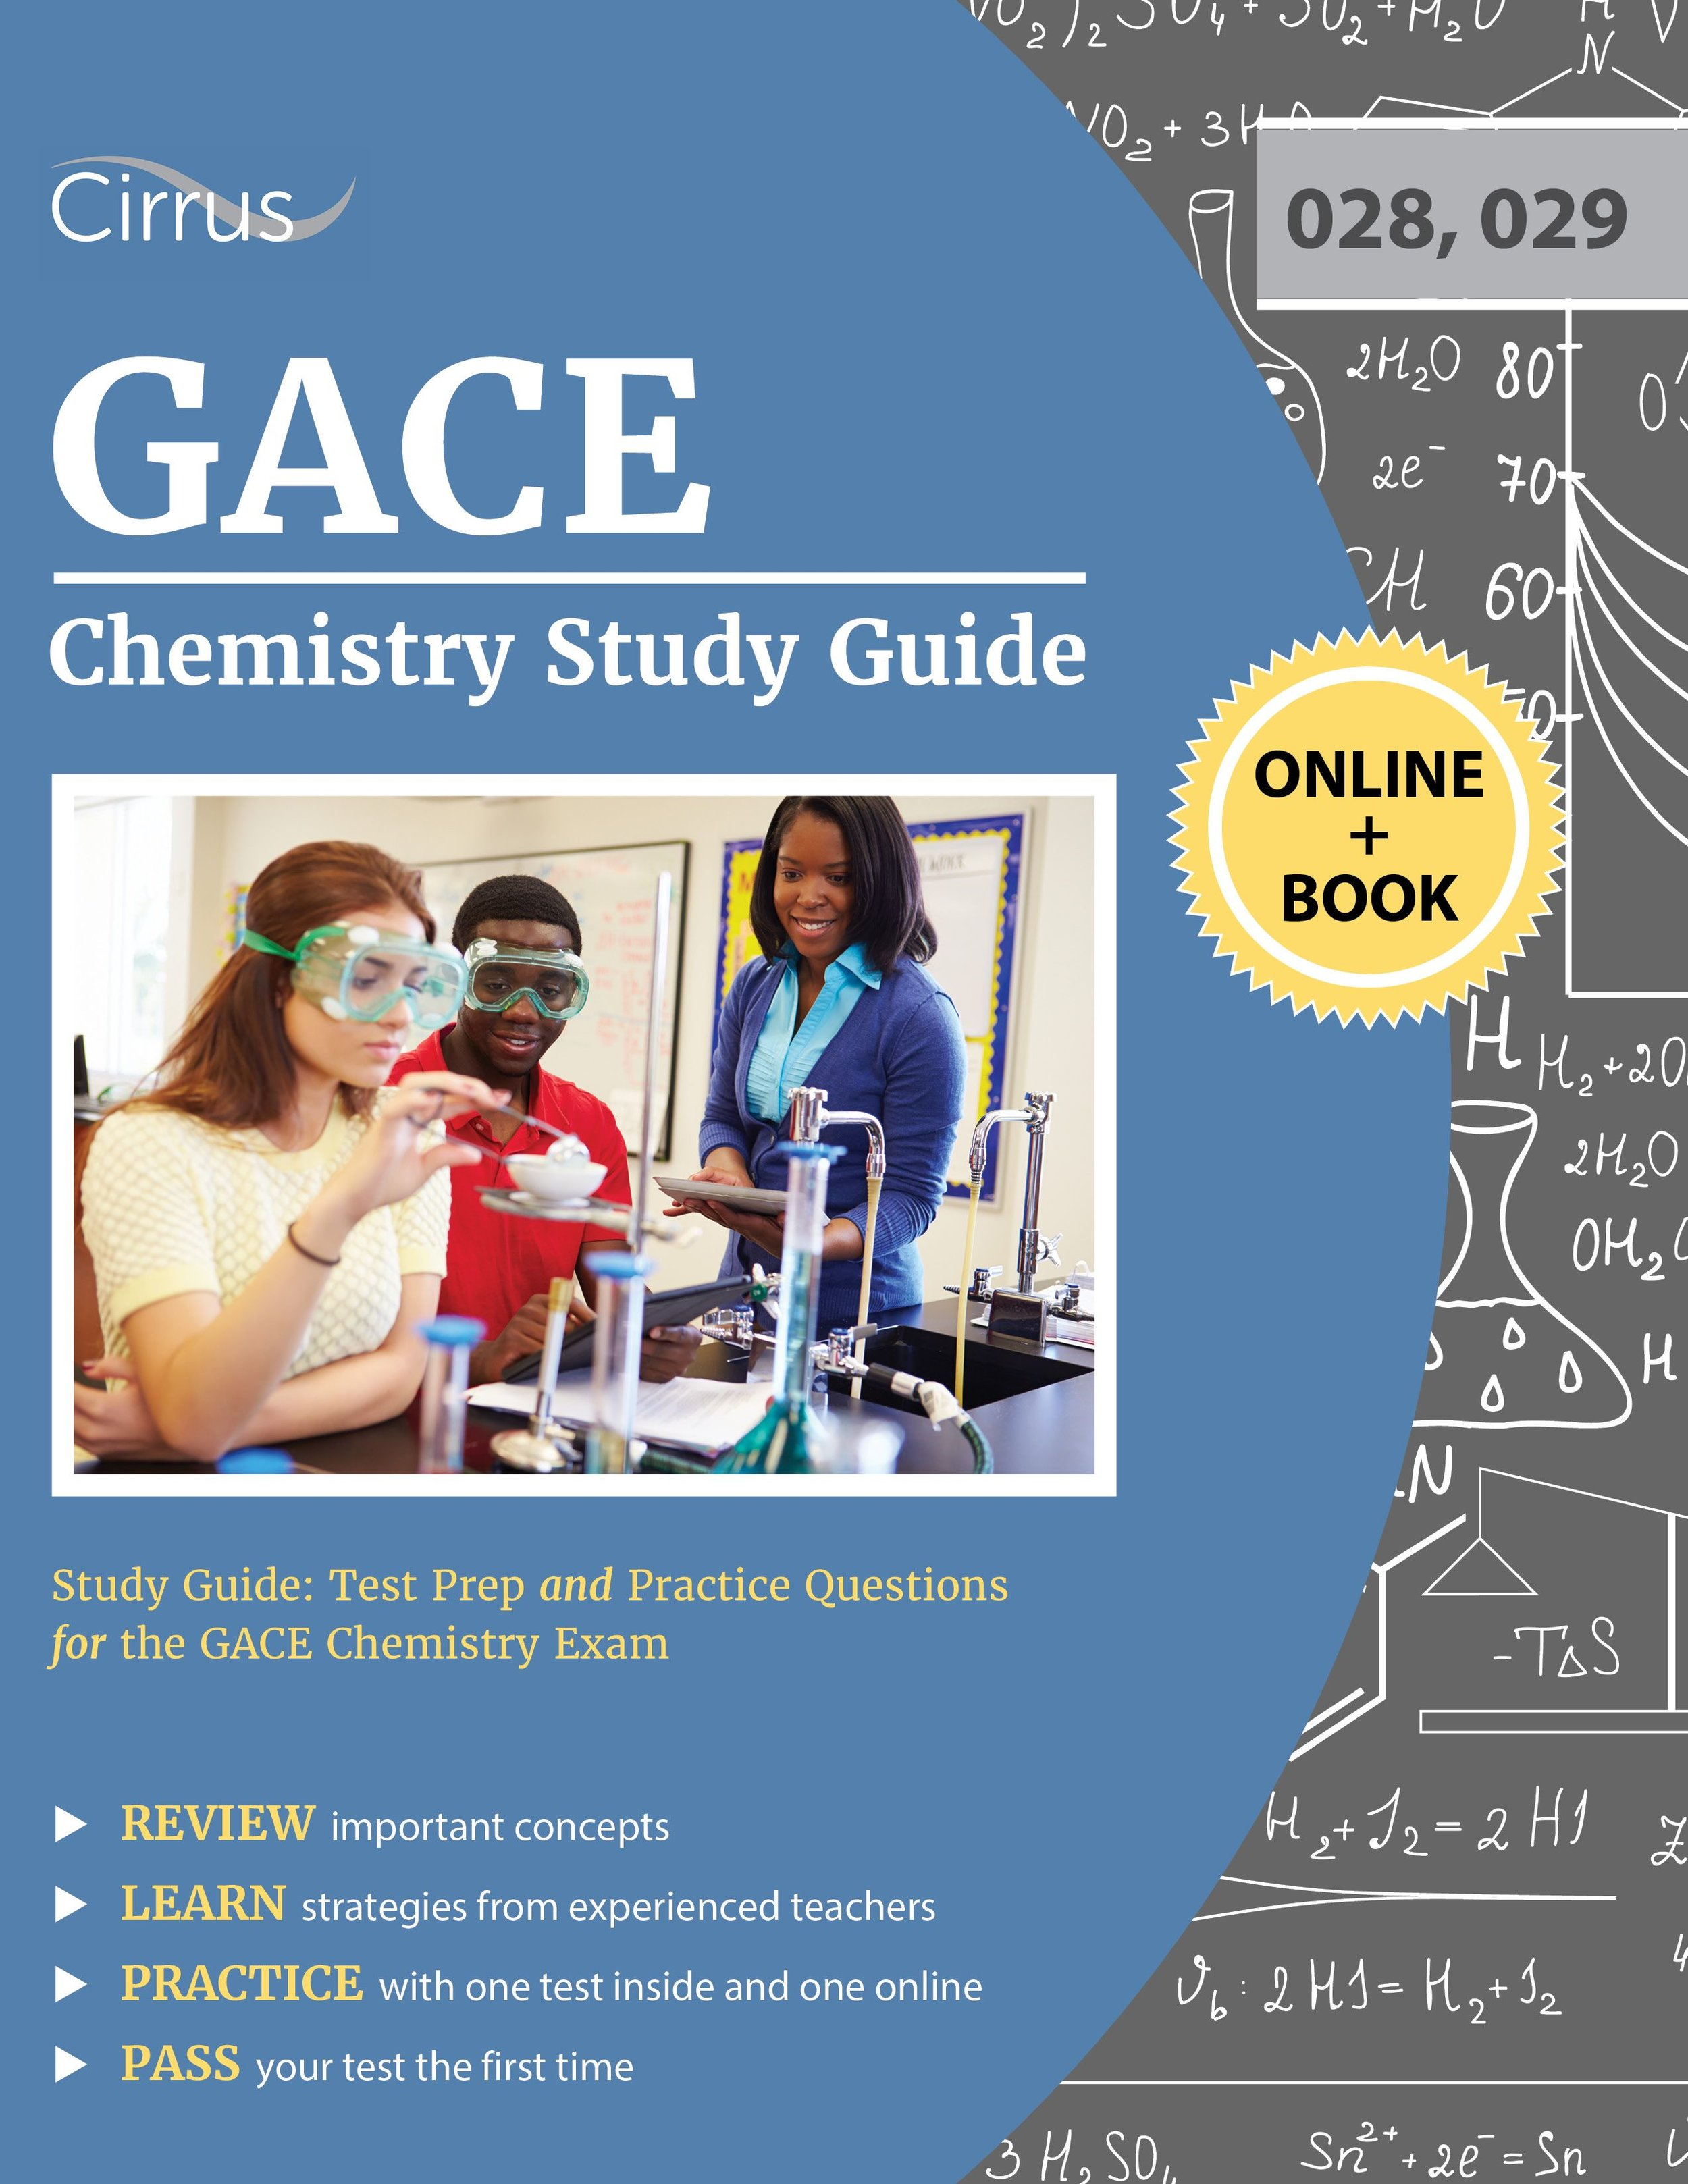 GACE_chemistry_cover_website-compressor.jpg